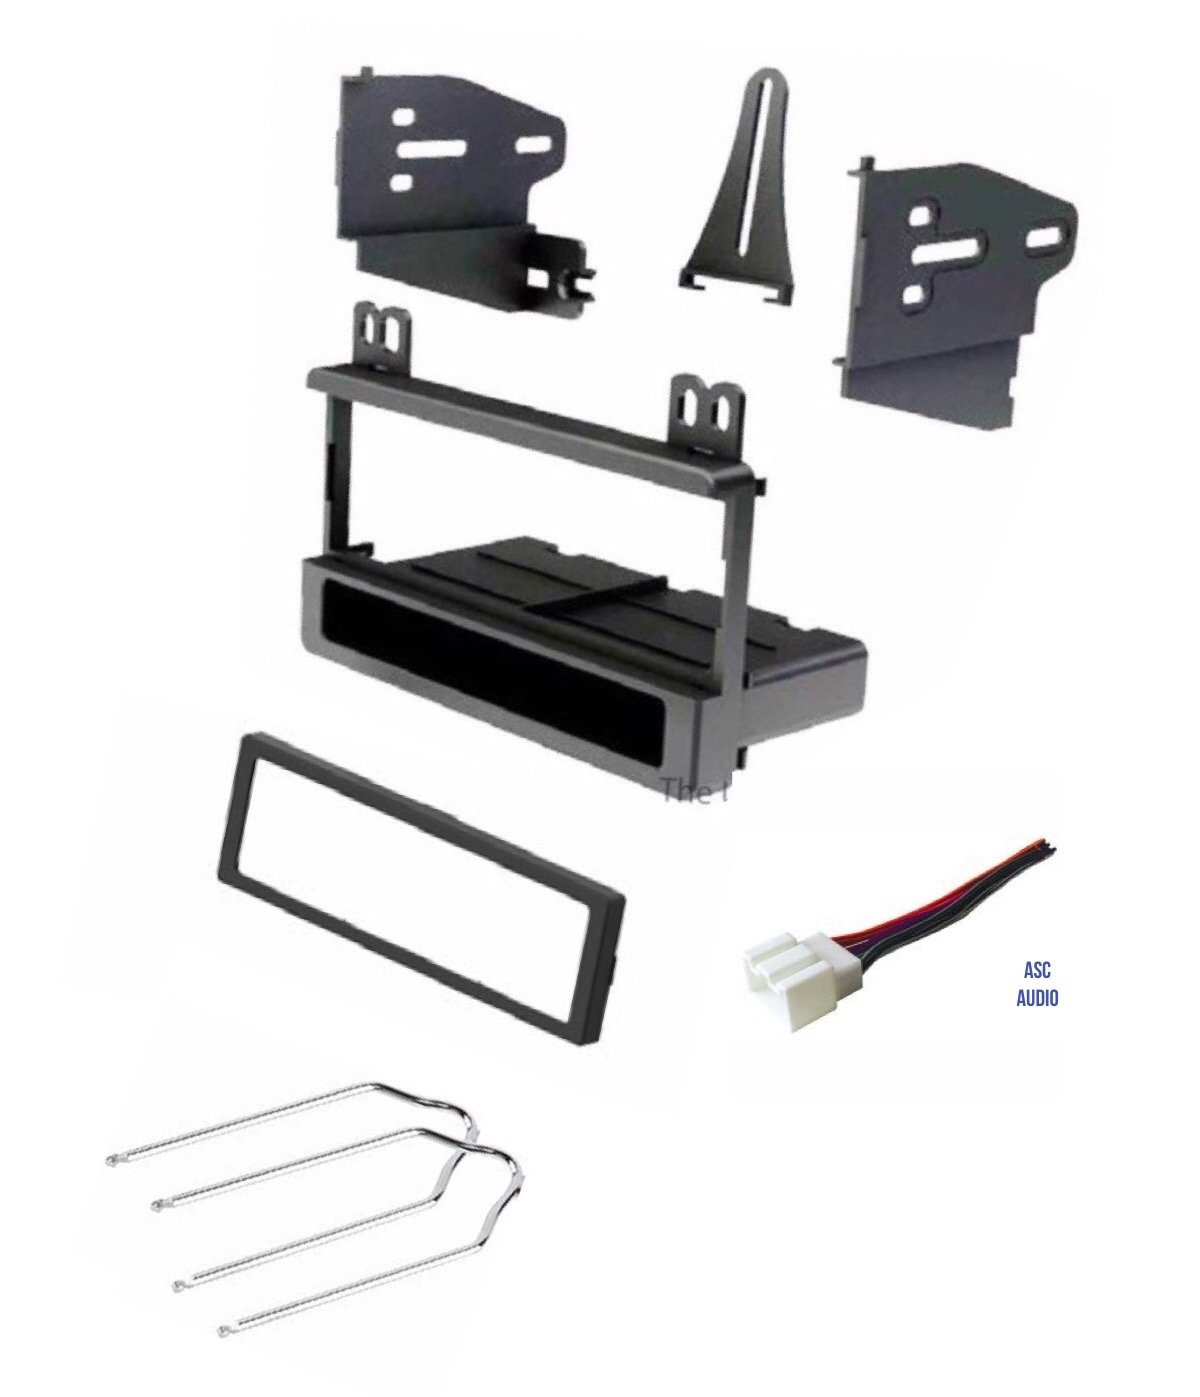 ASC Car Stereo Dash Kit, Wire Harness, and Radio Tool for Installing a Single Din Radio for some Ford Vehicles - Compatible Vehicles Listed Below